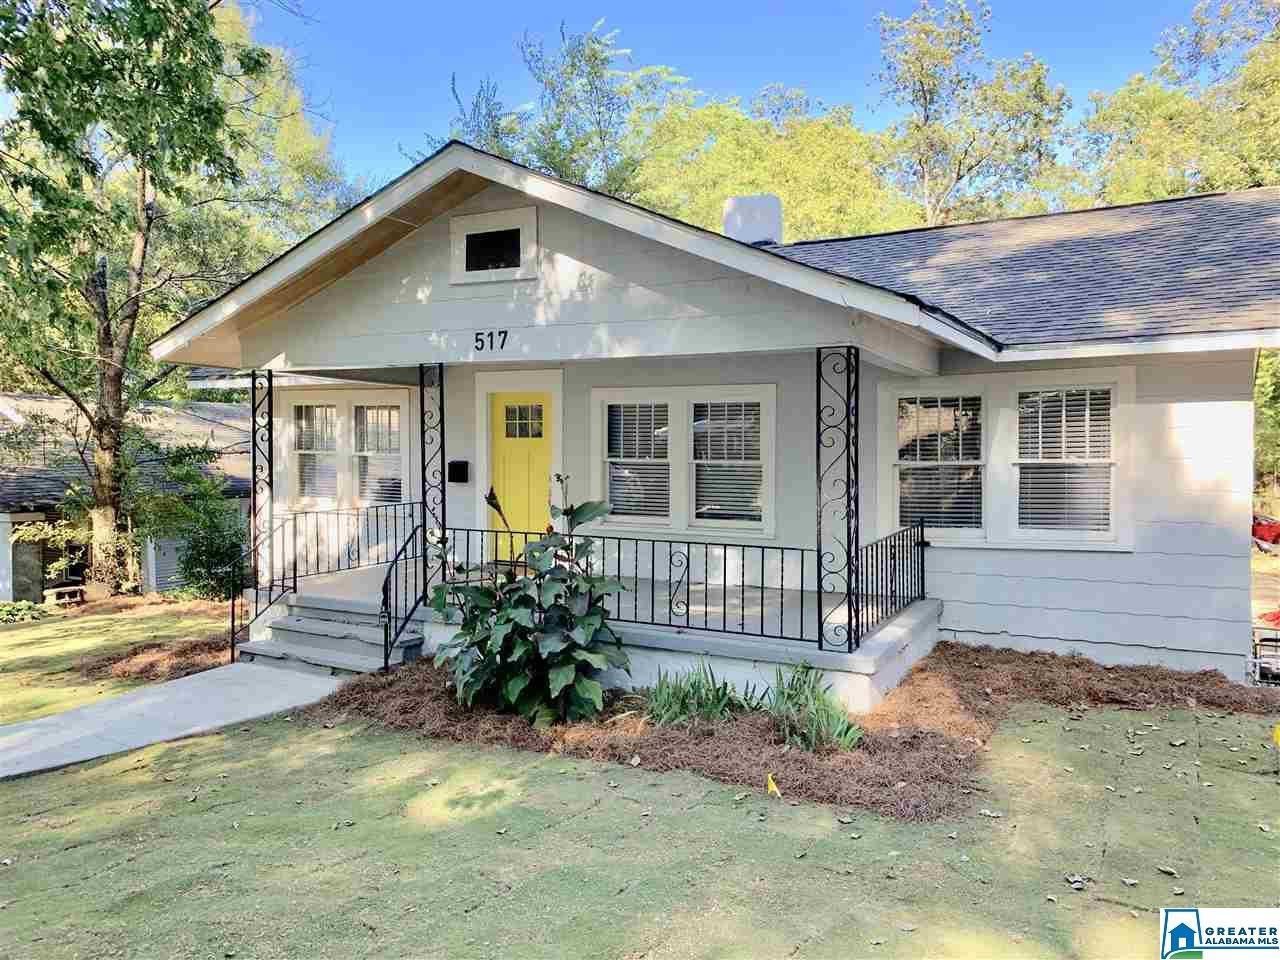 517 59TH PL S, Birmingham, AL 35212 - MLS#: 897489